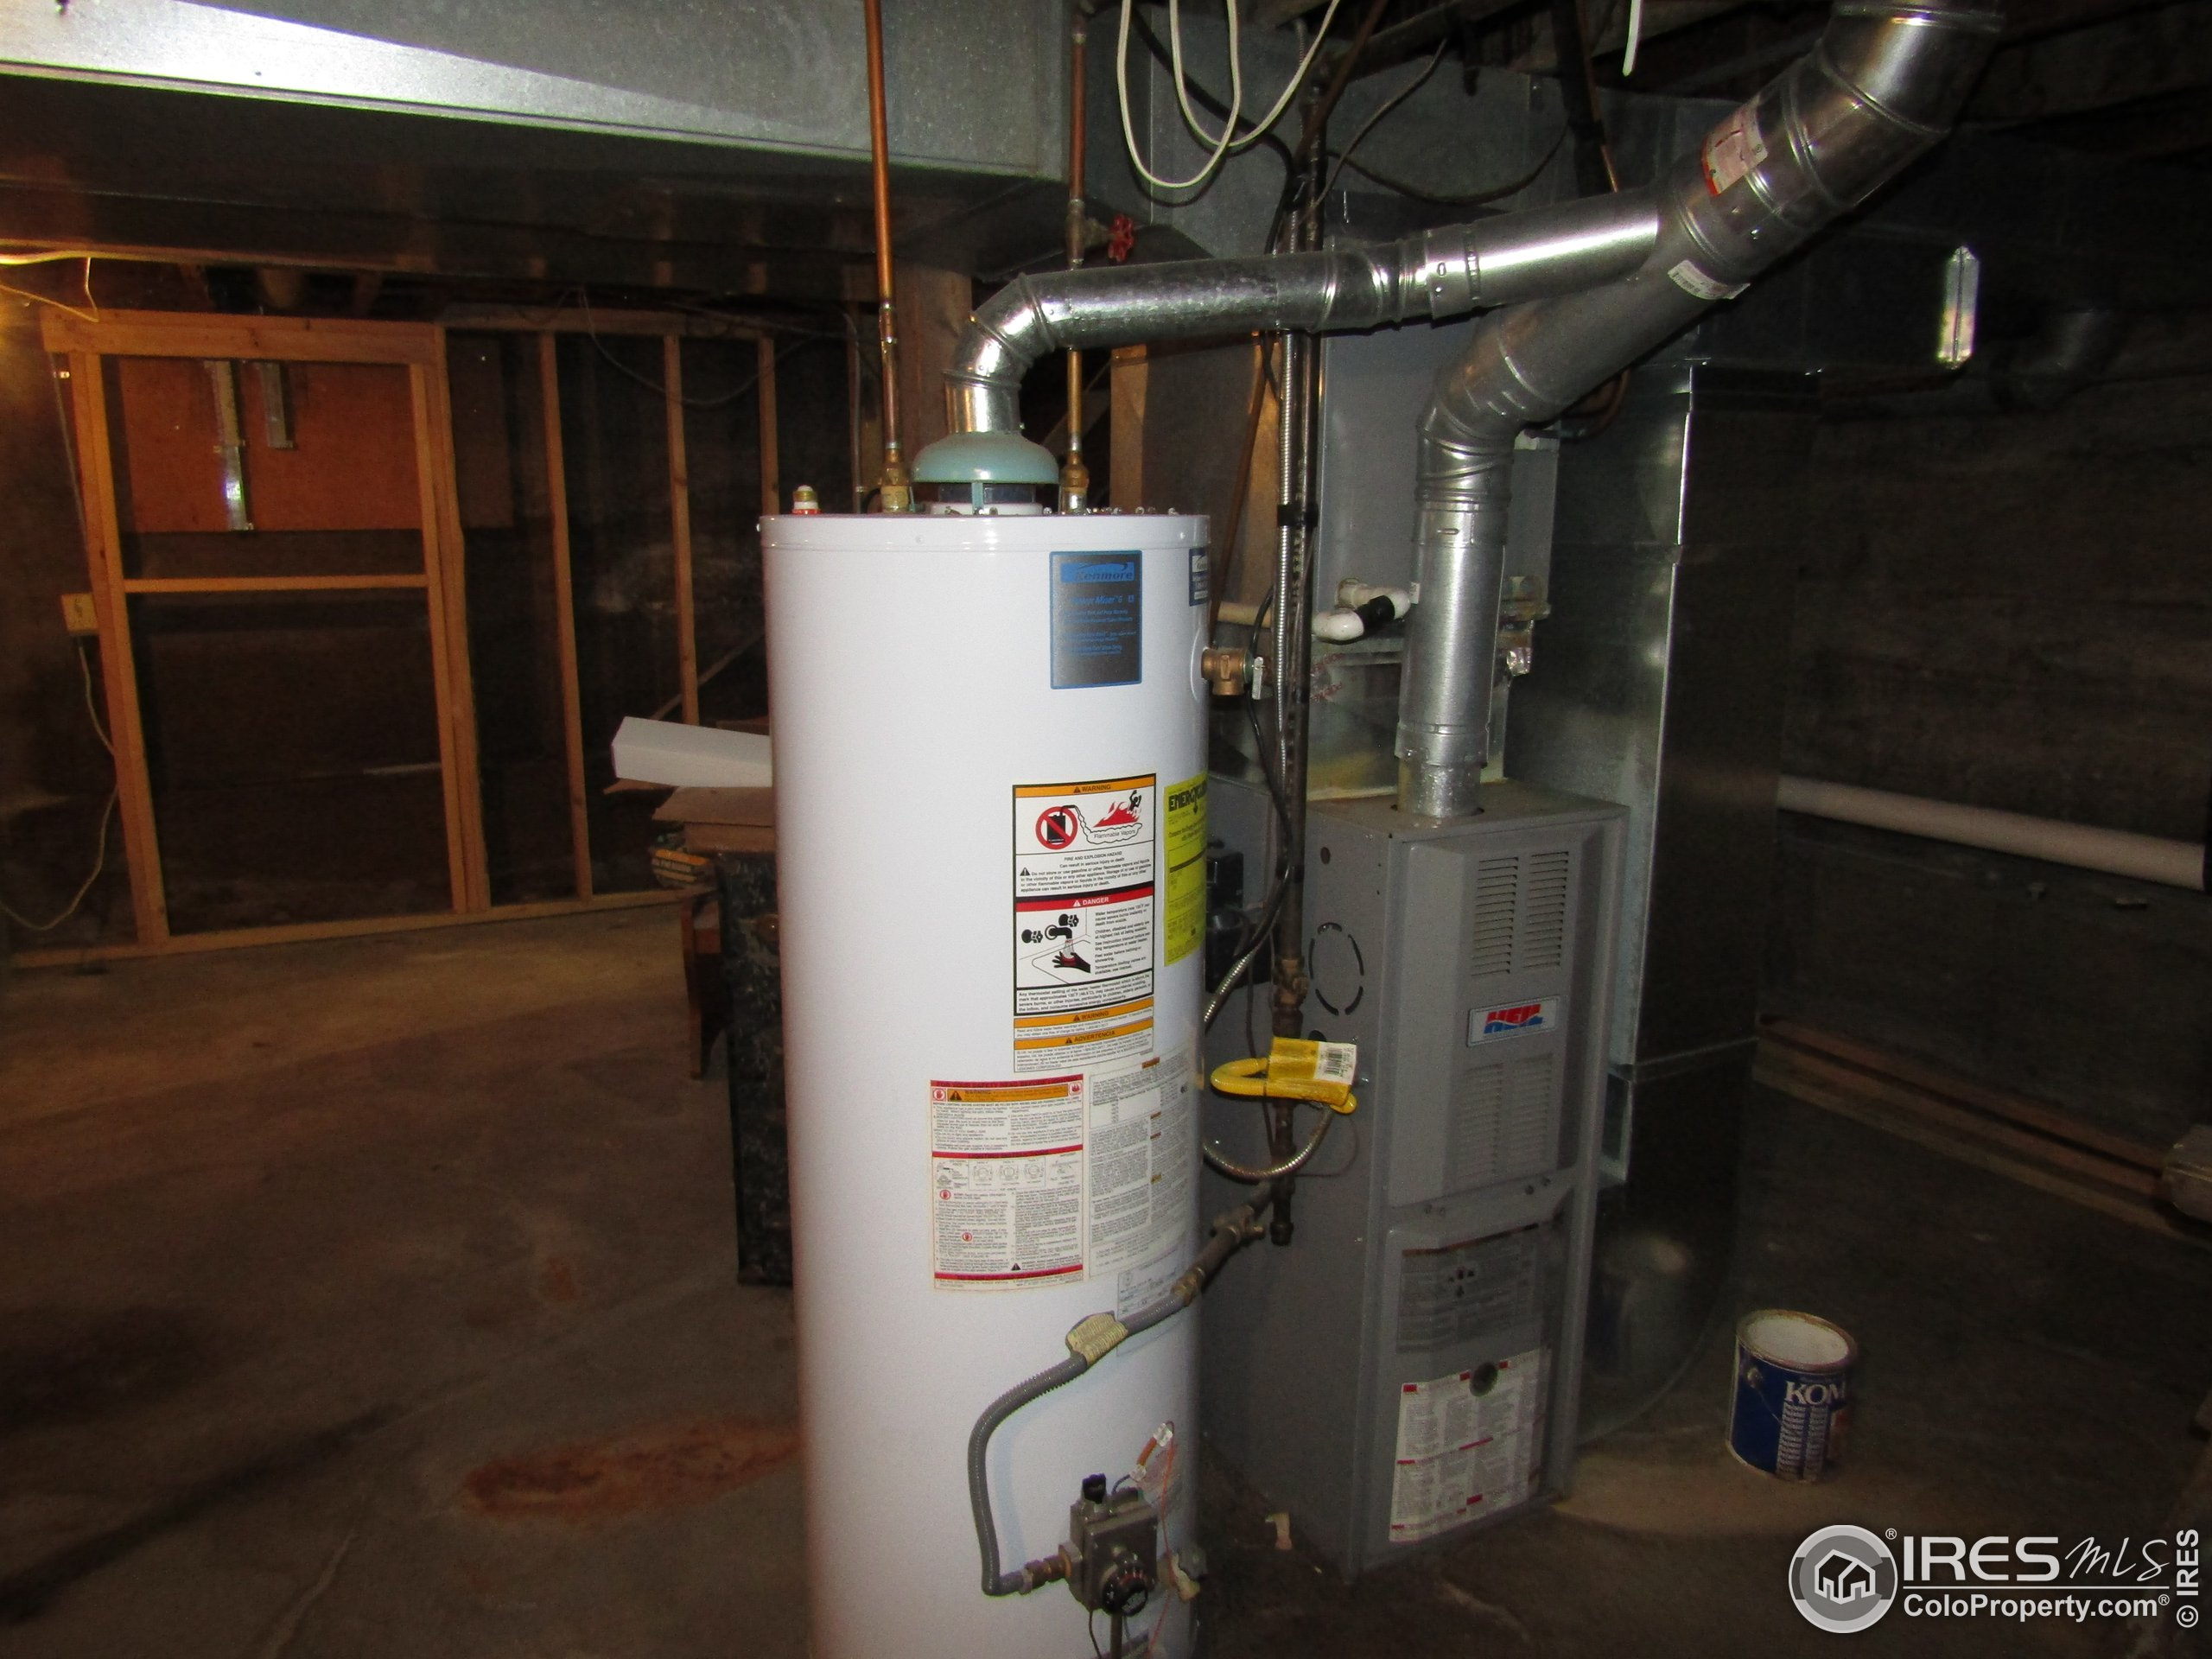 Water heater & furnace for unit 1